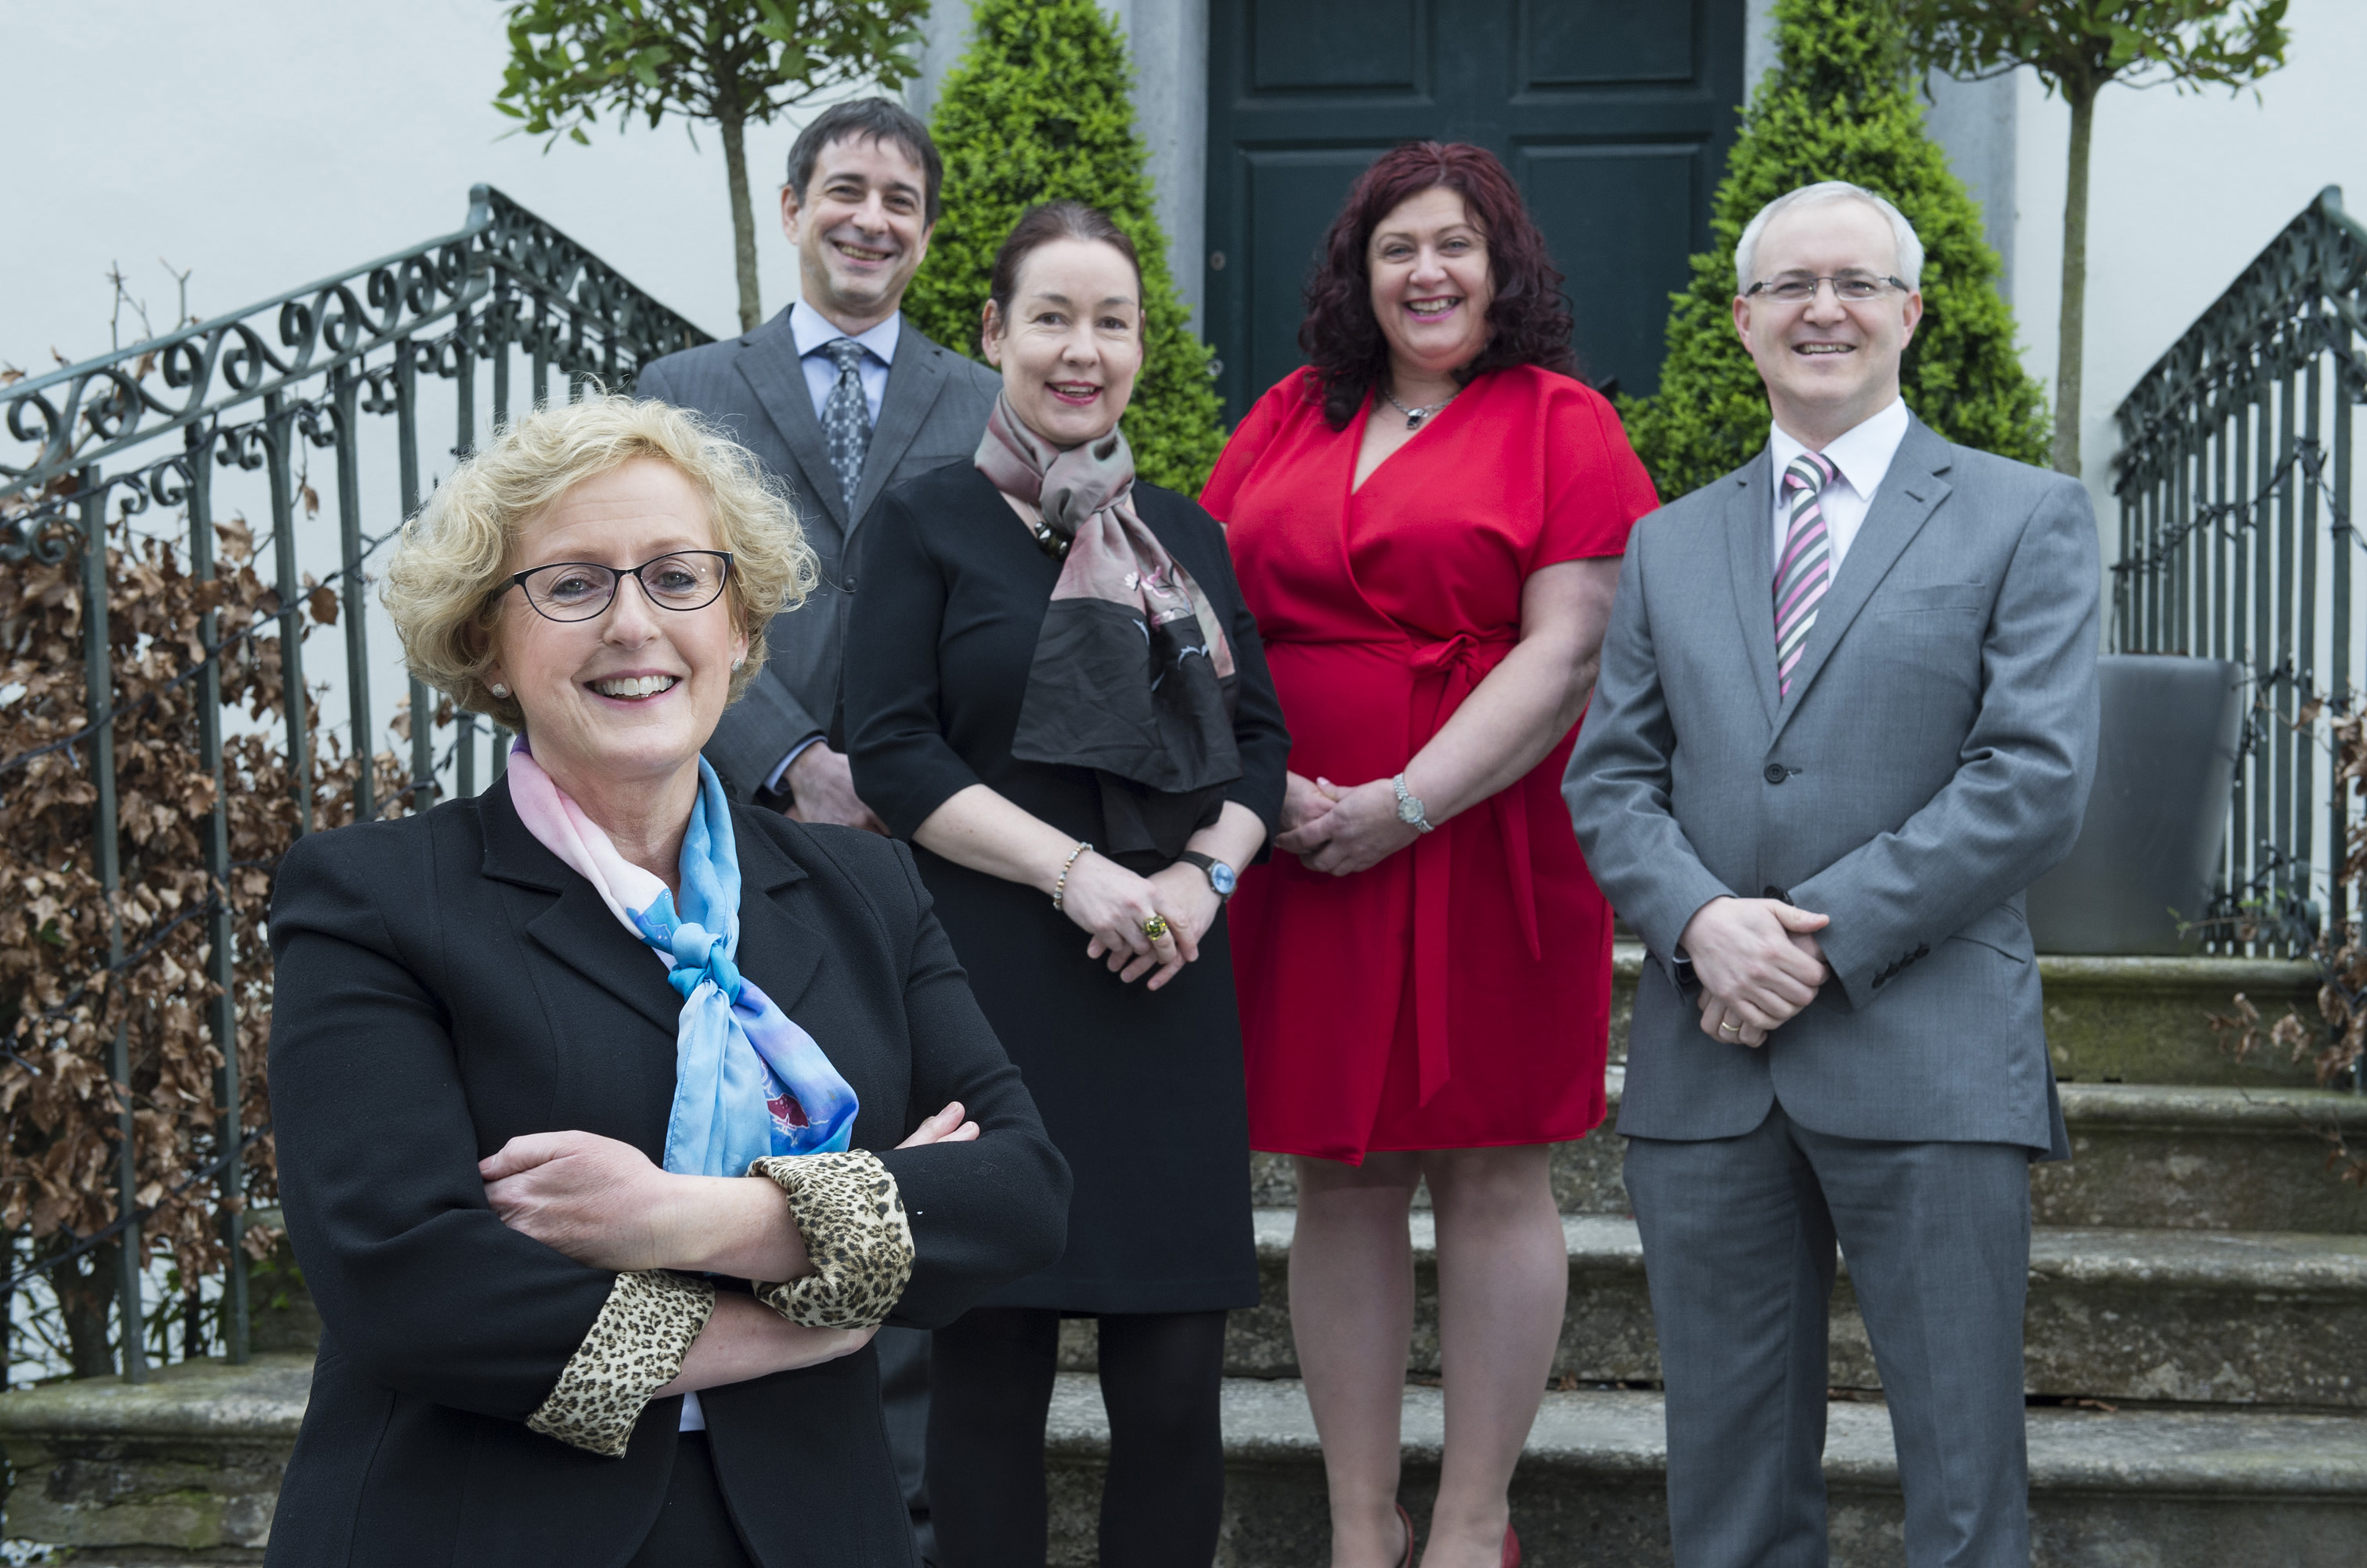 free pic no repro fee     GMC06042017  Dr Marie Murphy, Dr Michael Bauer , Ms Judy Wall, Catherine Buckley Conference Chair and Dr Kieran O'Connor pictured at the St Luke's Home Annual Conference, Resident, Staff, Family, Relationships at the Radisson Blu Hotel. Photography by  Gerard McCarthy 087 8537228 more info contact Oonagh O' Driscoll   St. Luke's Home Foundation    Oonagh.odriscoll@stlukeshome.ie     (086)  8119340  (021) 4359444